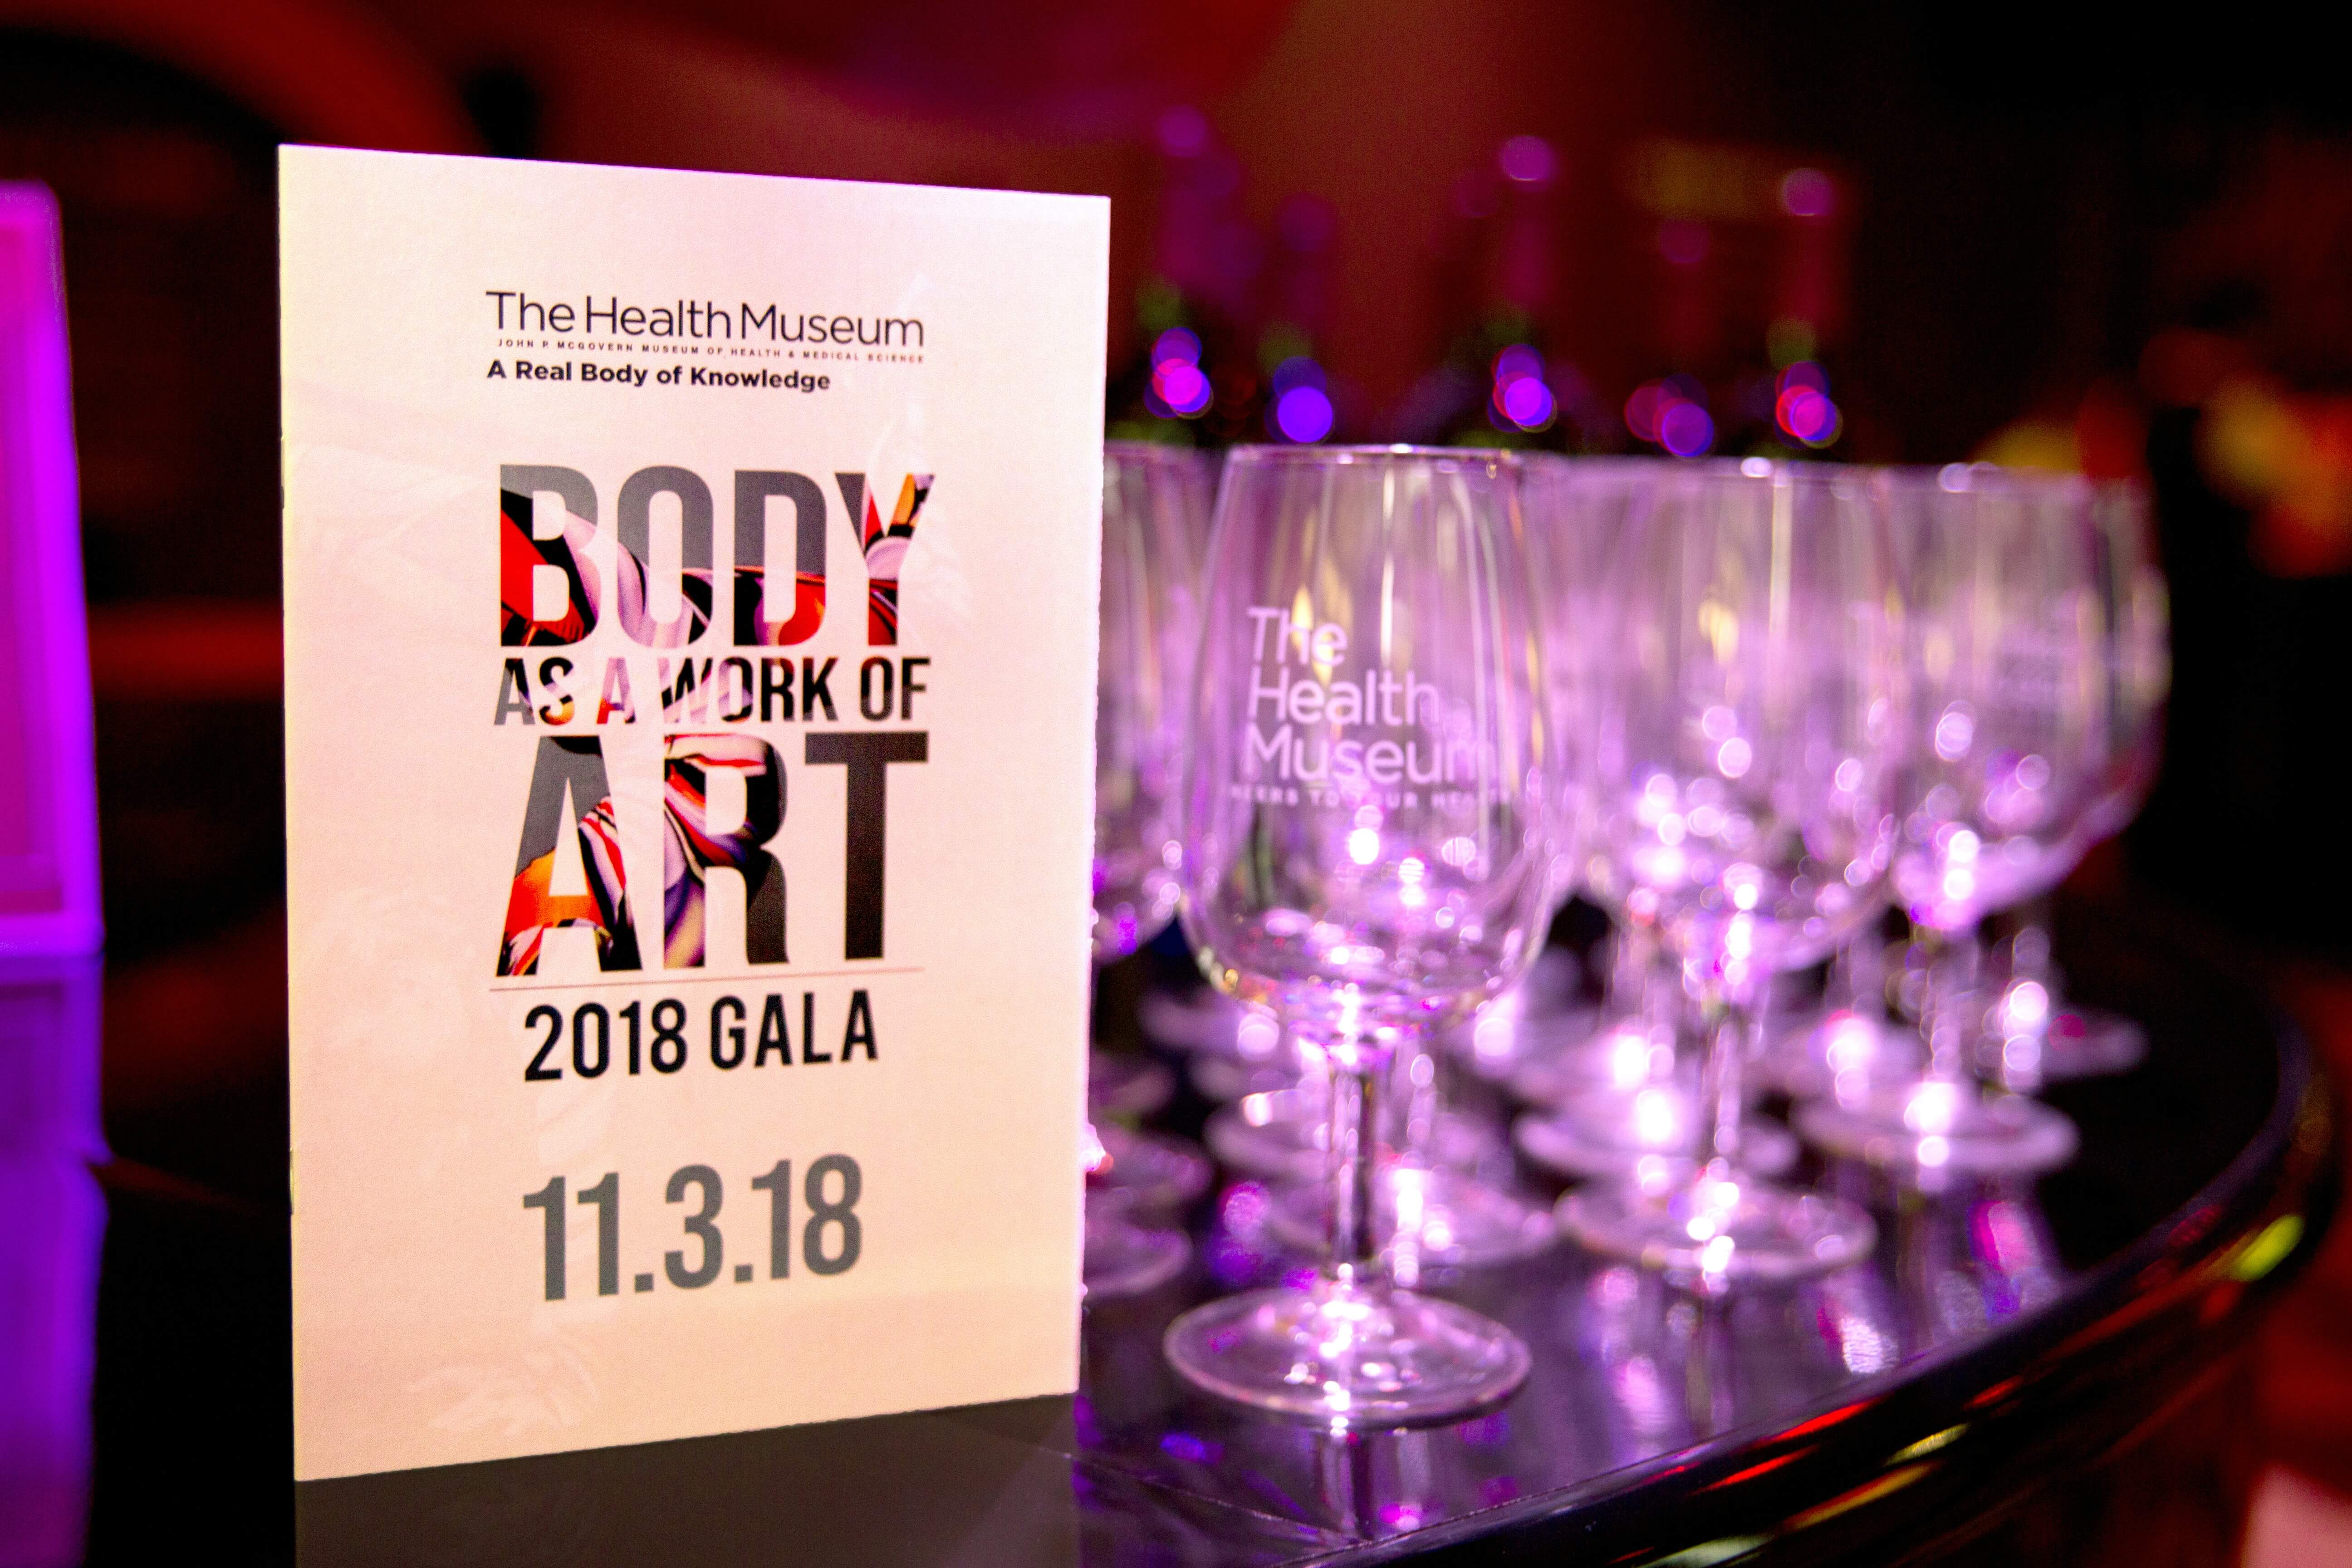 The Health Museum celebrated its 22nd anniversary with the